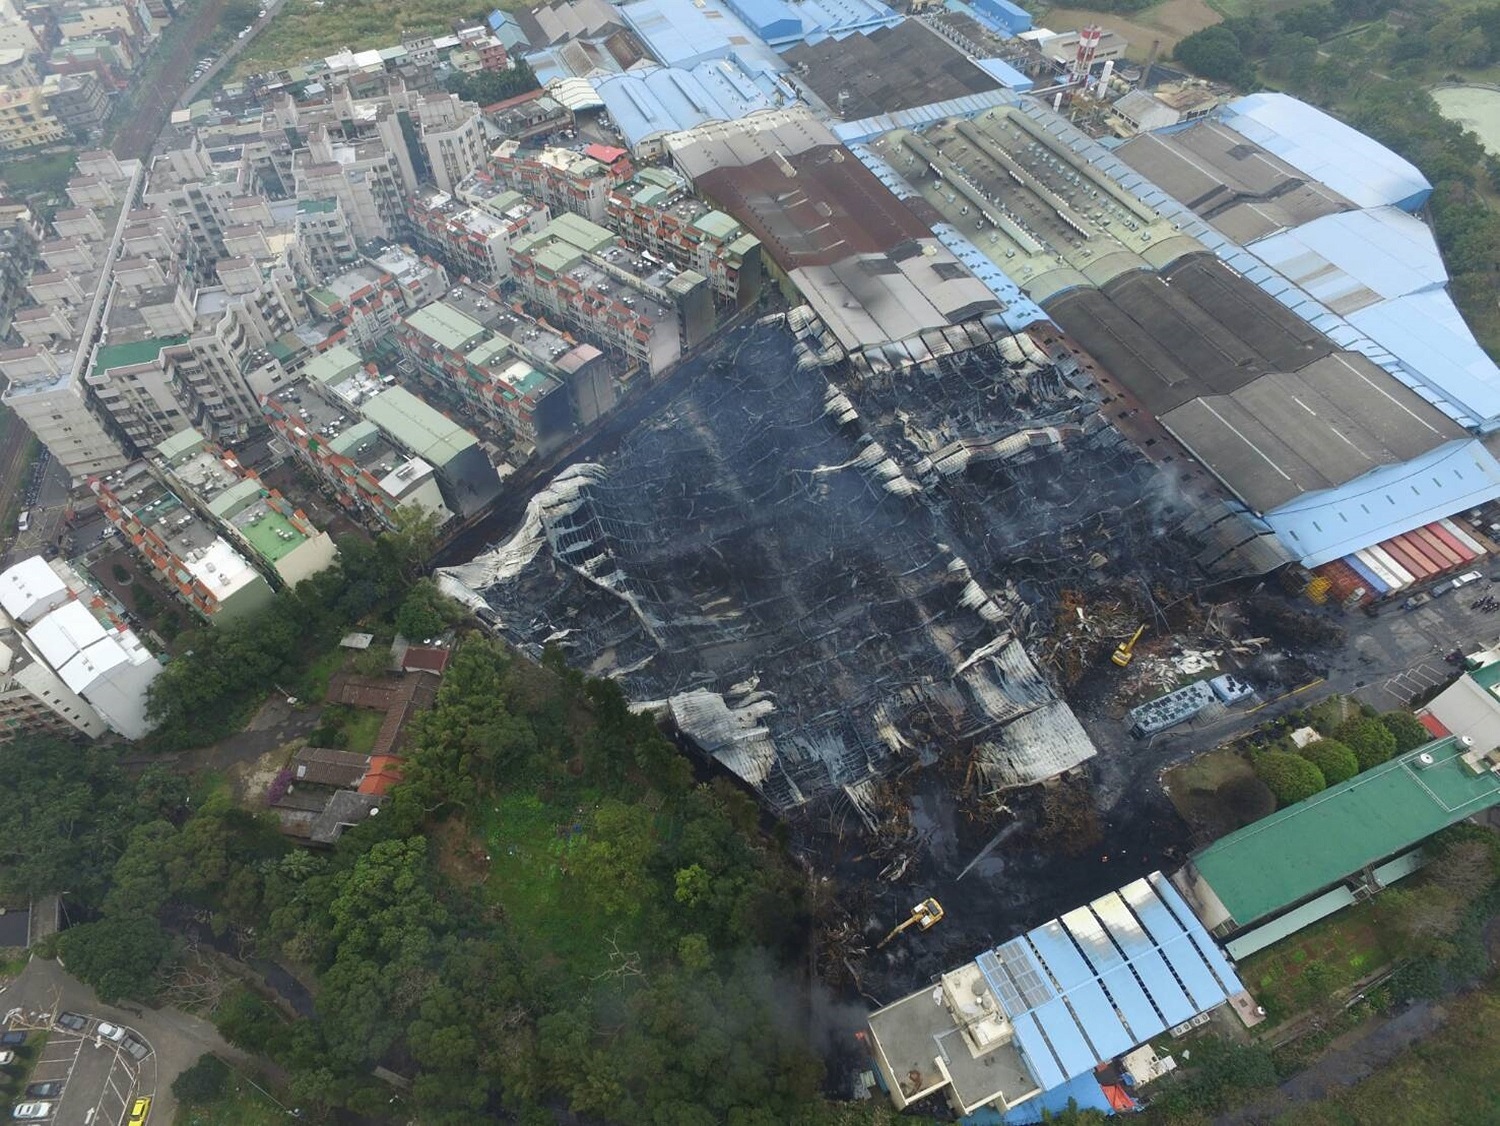 Aerial view of charred remains of tire plant